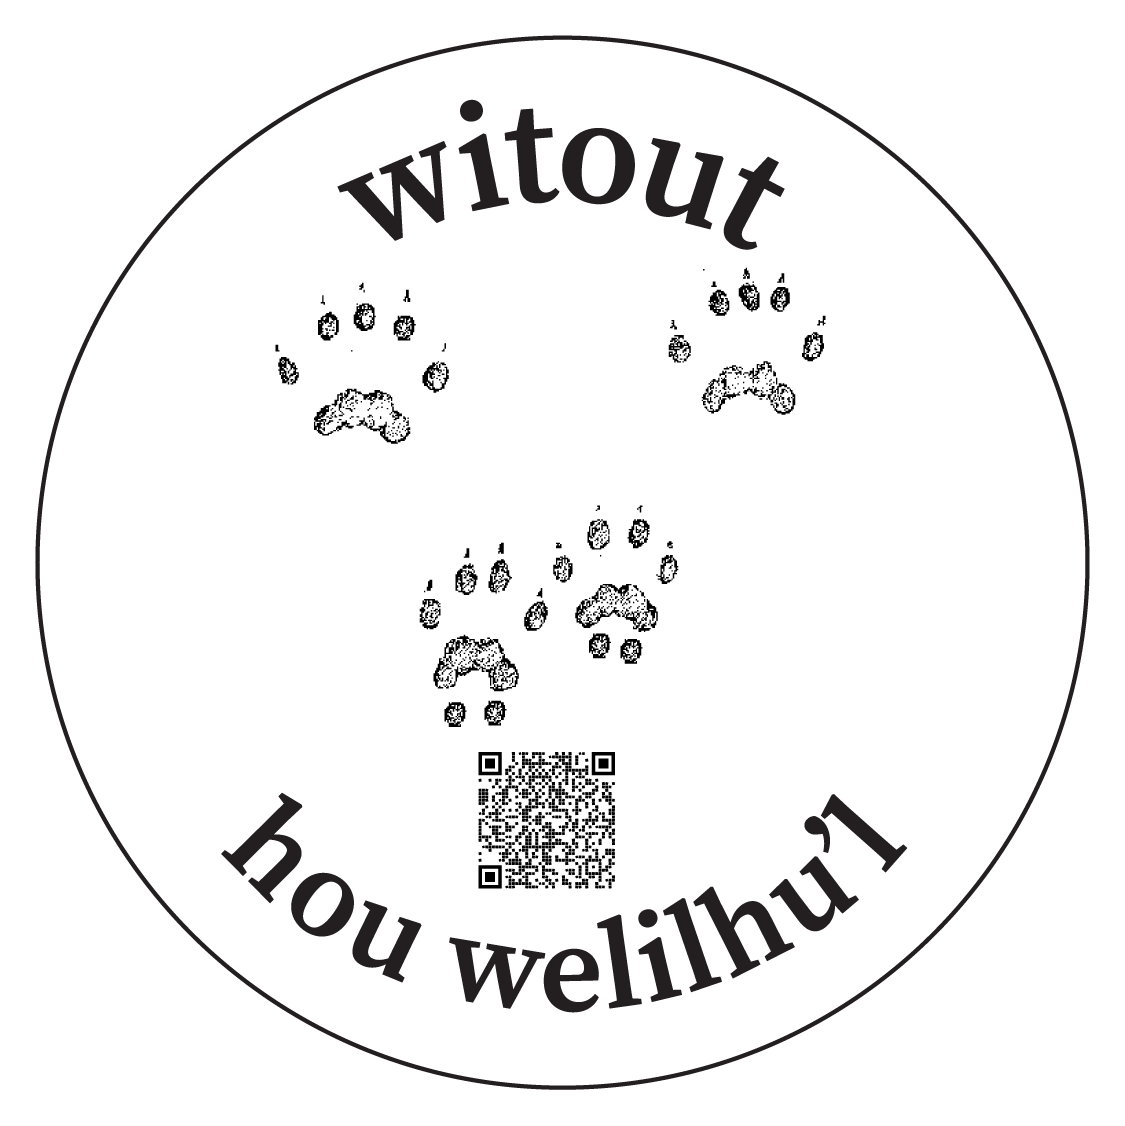 witout_hou_welilhul